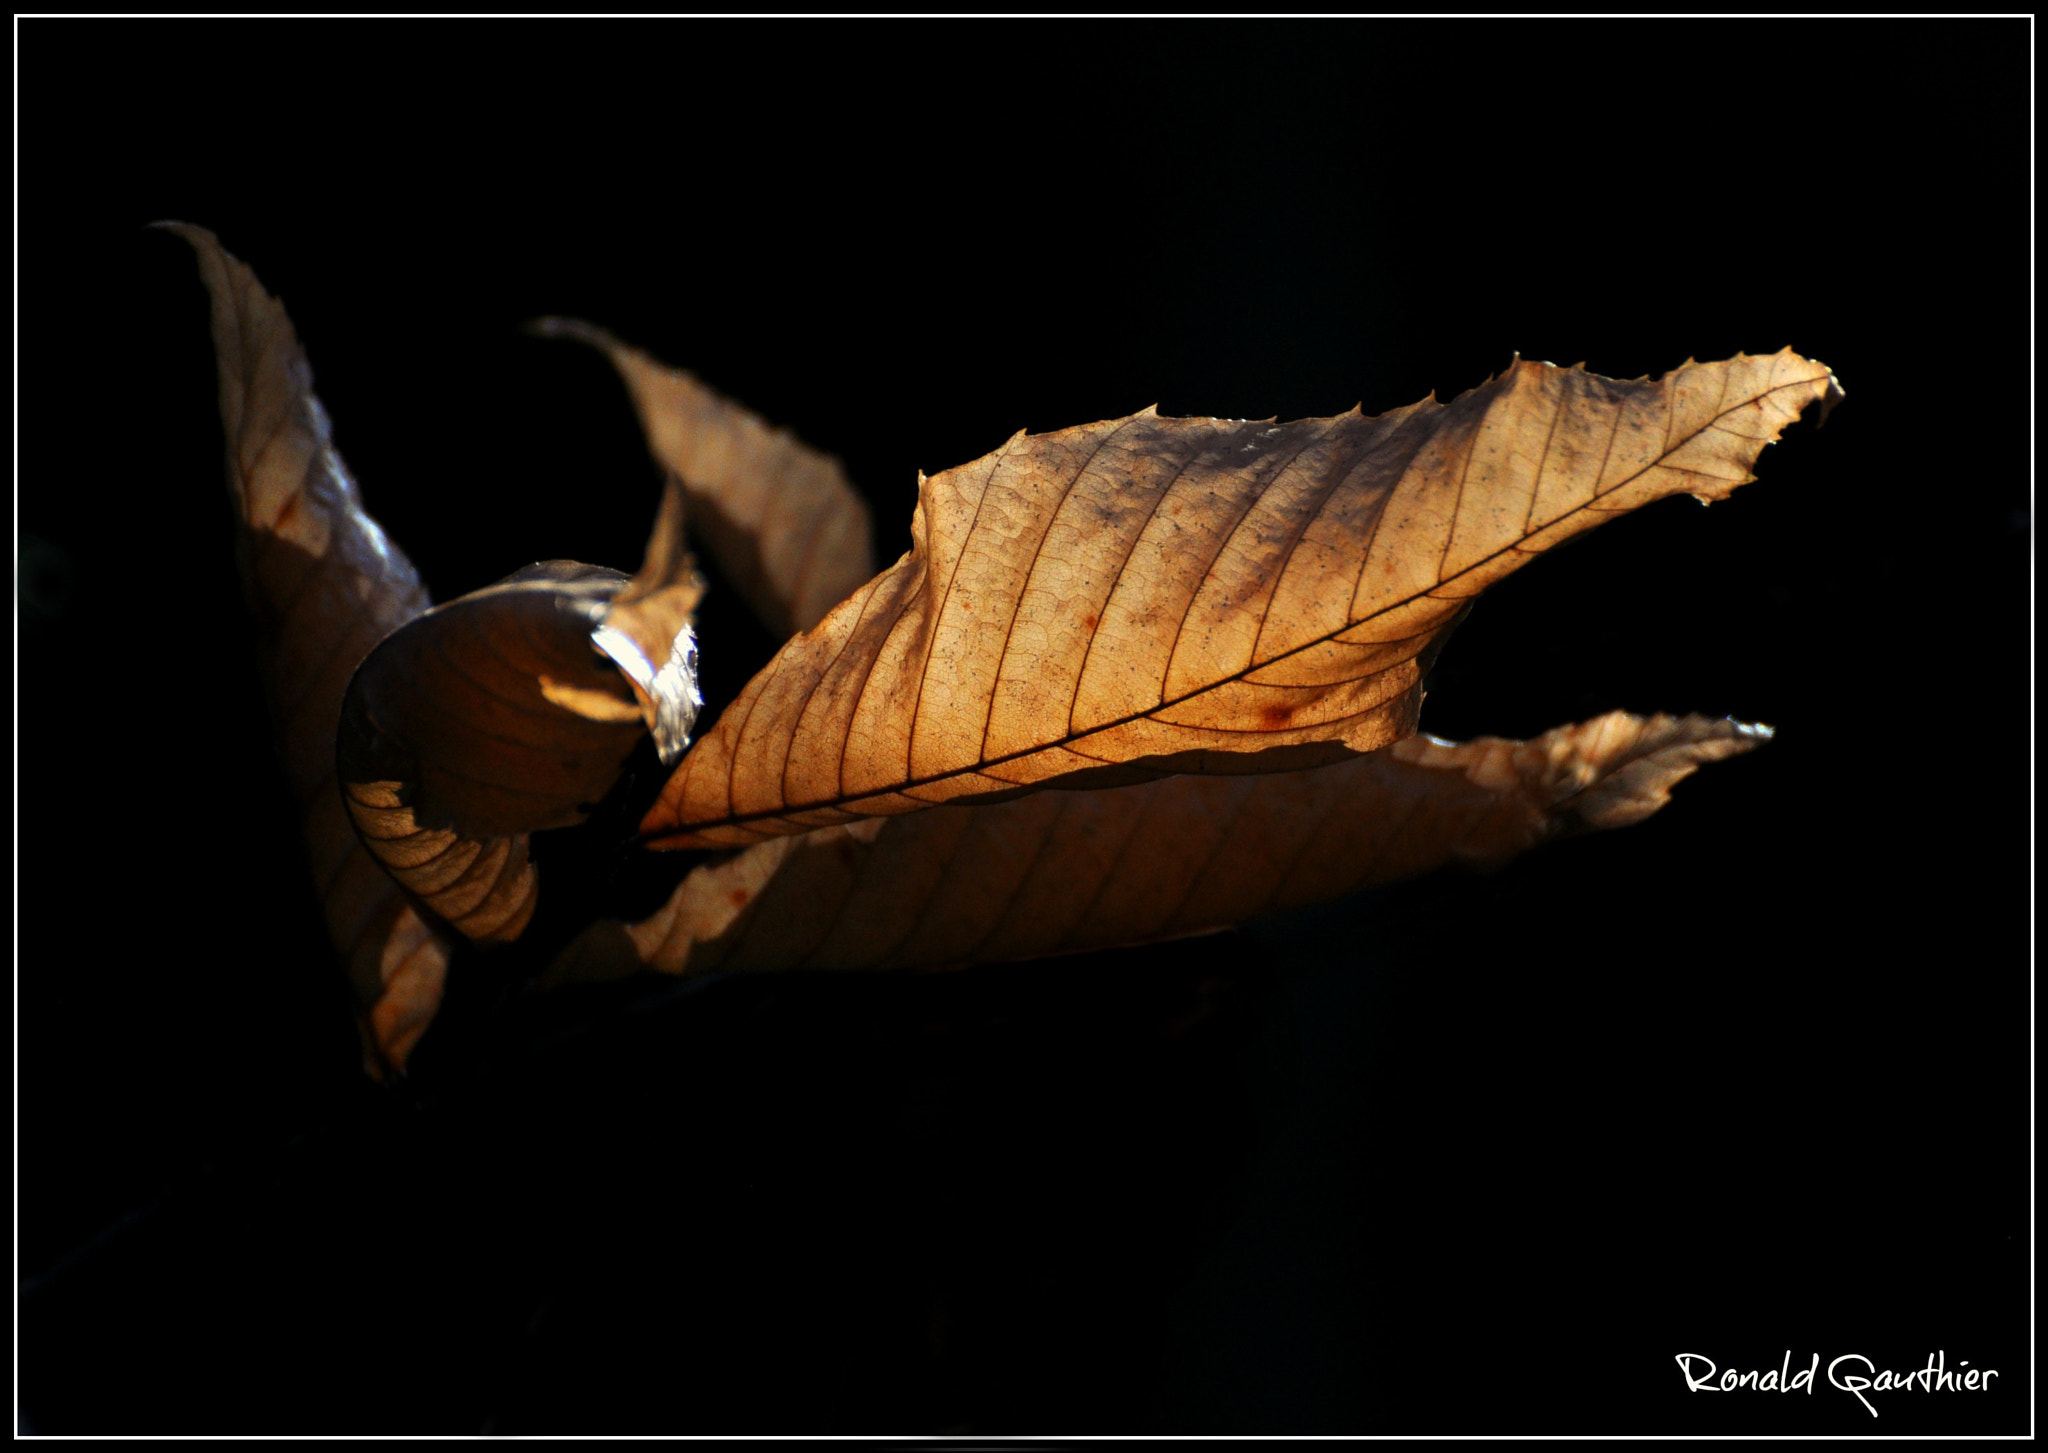 Photograph Another Season by Ron Gauthier on 500px